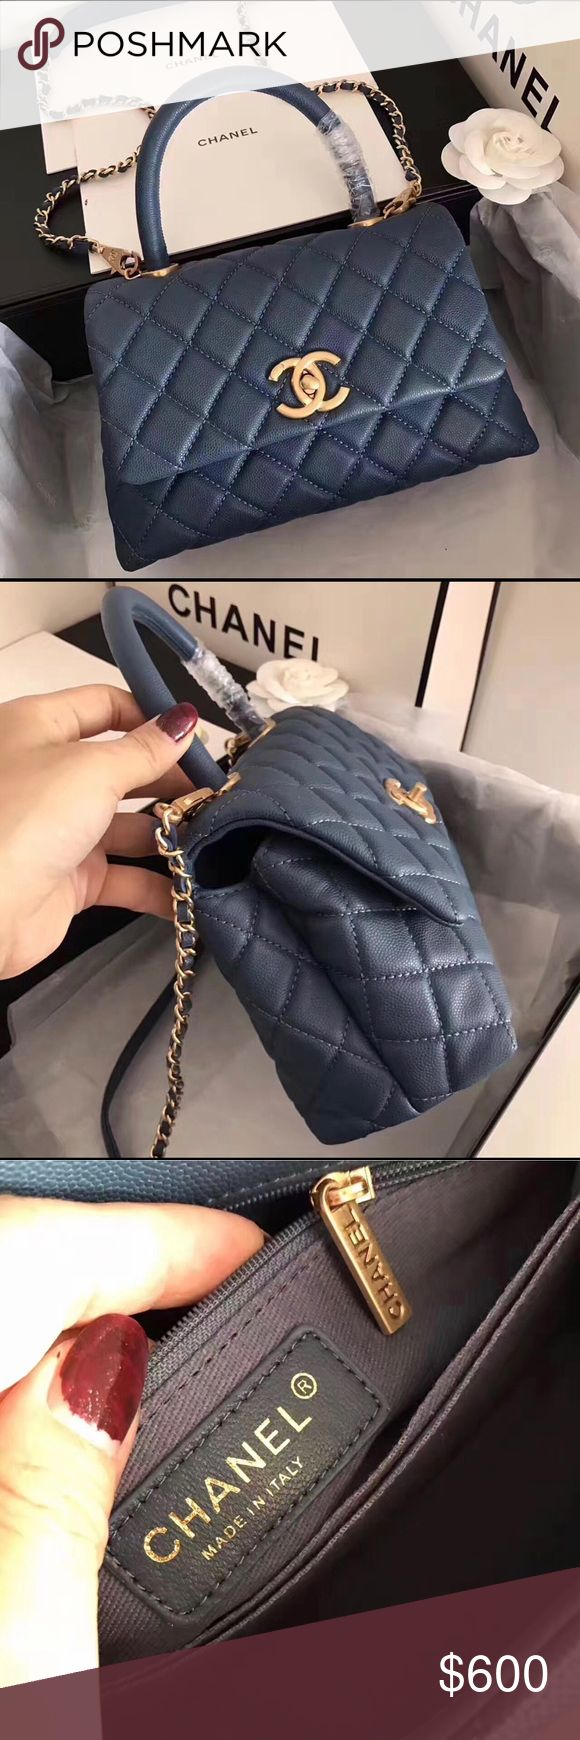 Chanel Bag For Sale Brand New!!!!! TAKING OFFERS Bag is 100% Real Leather Brand New Comes With Packaging Never Worn CHANEL Bags Shoulder Bags